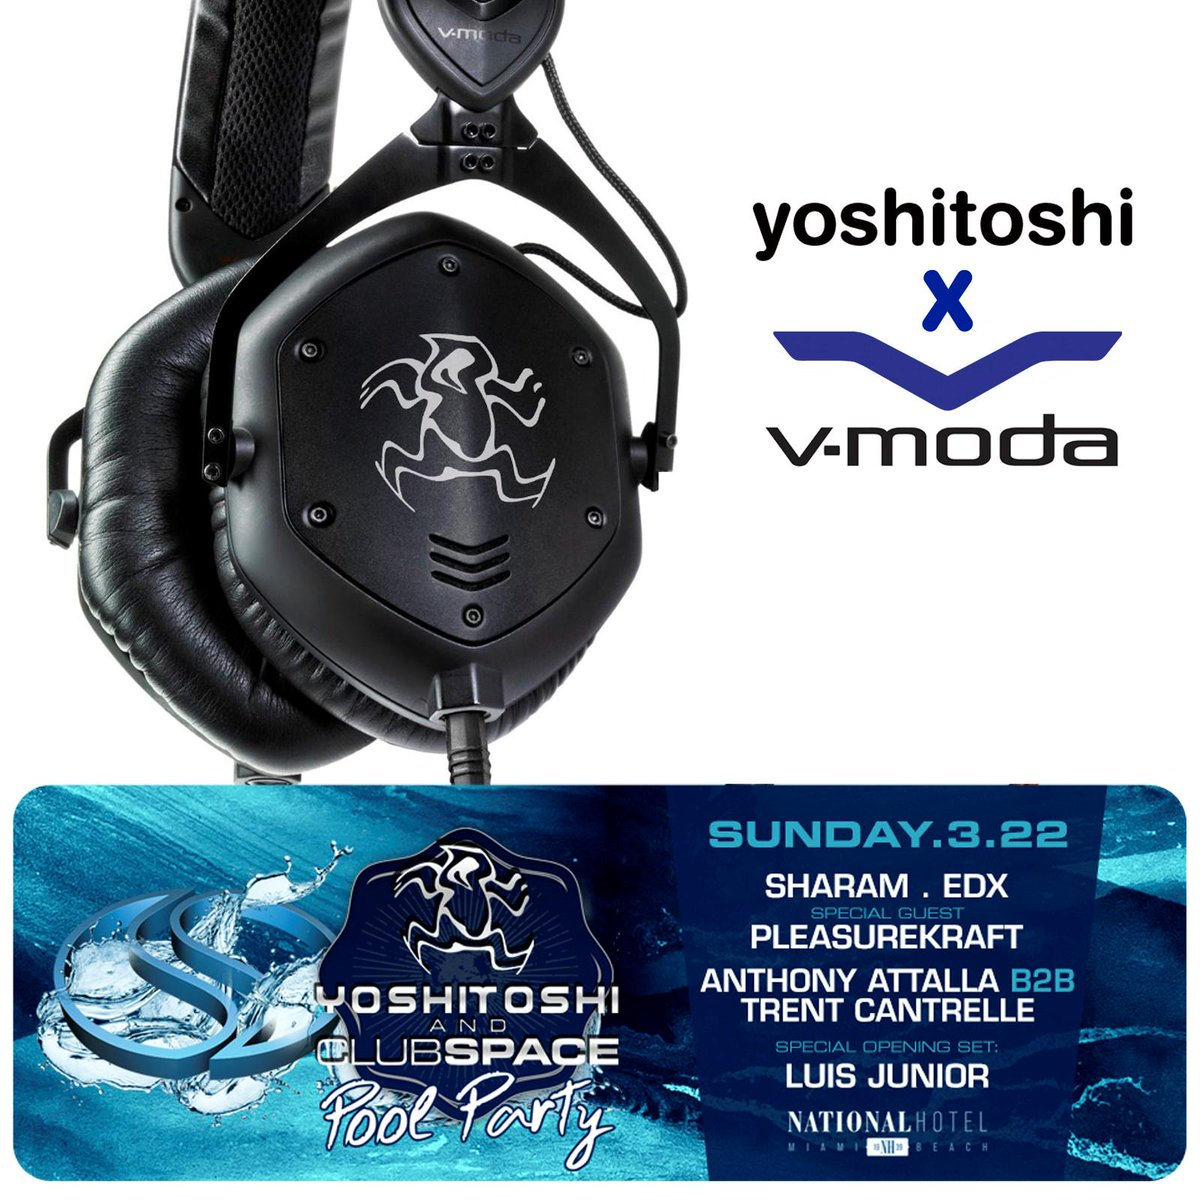 #RT to win - we're celebrating #MiamiMusicWeek by giving away a pair of custom @Yoshitoshi x @VMODA M-100's! http://t.co/ZG7hVdqTN4